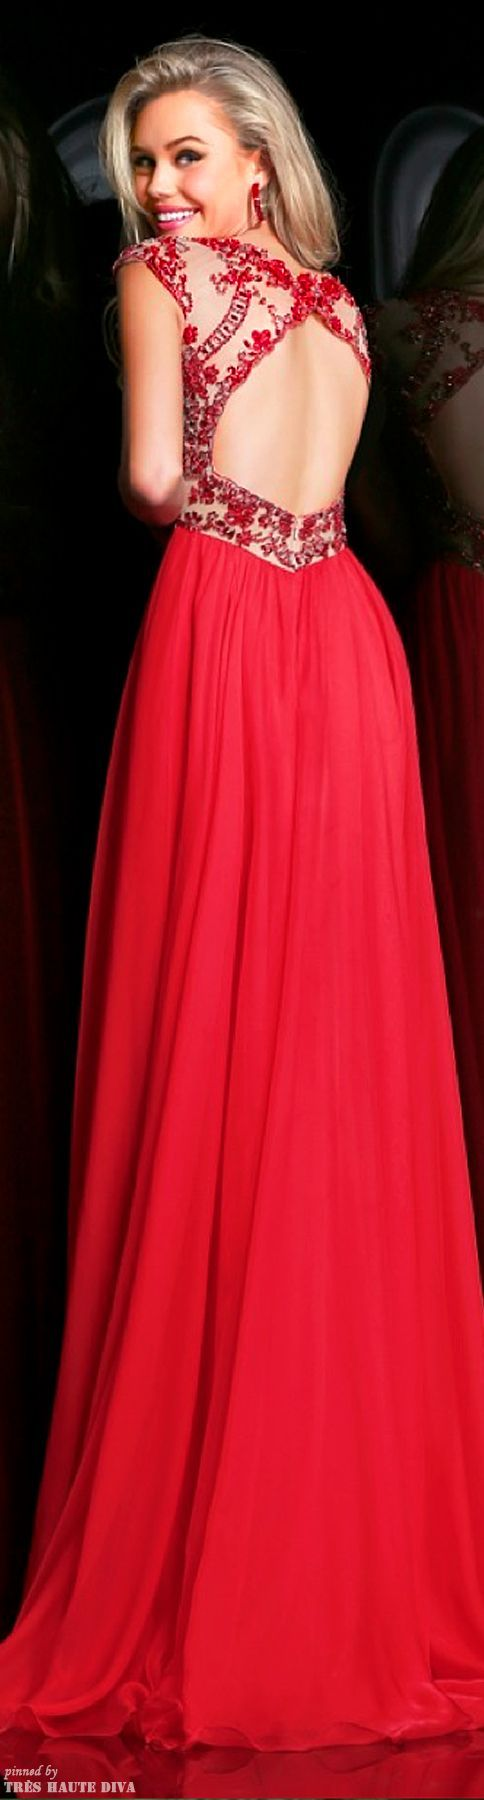 Red Formal Dress Image http://imgsnpics.com/red-formal-dress-image-27/